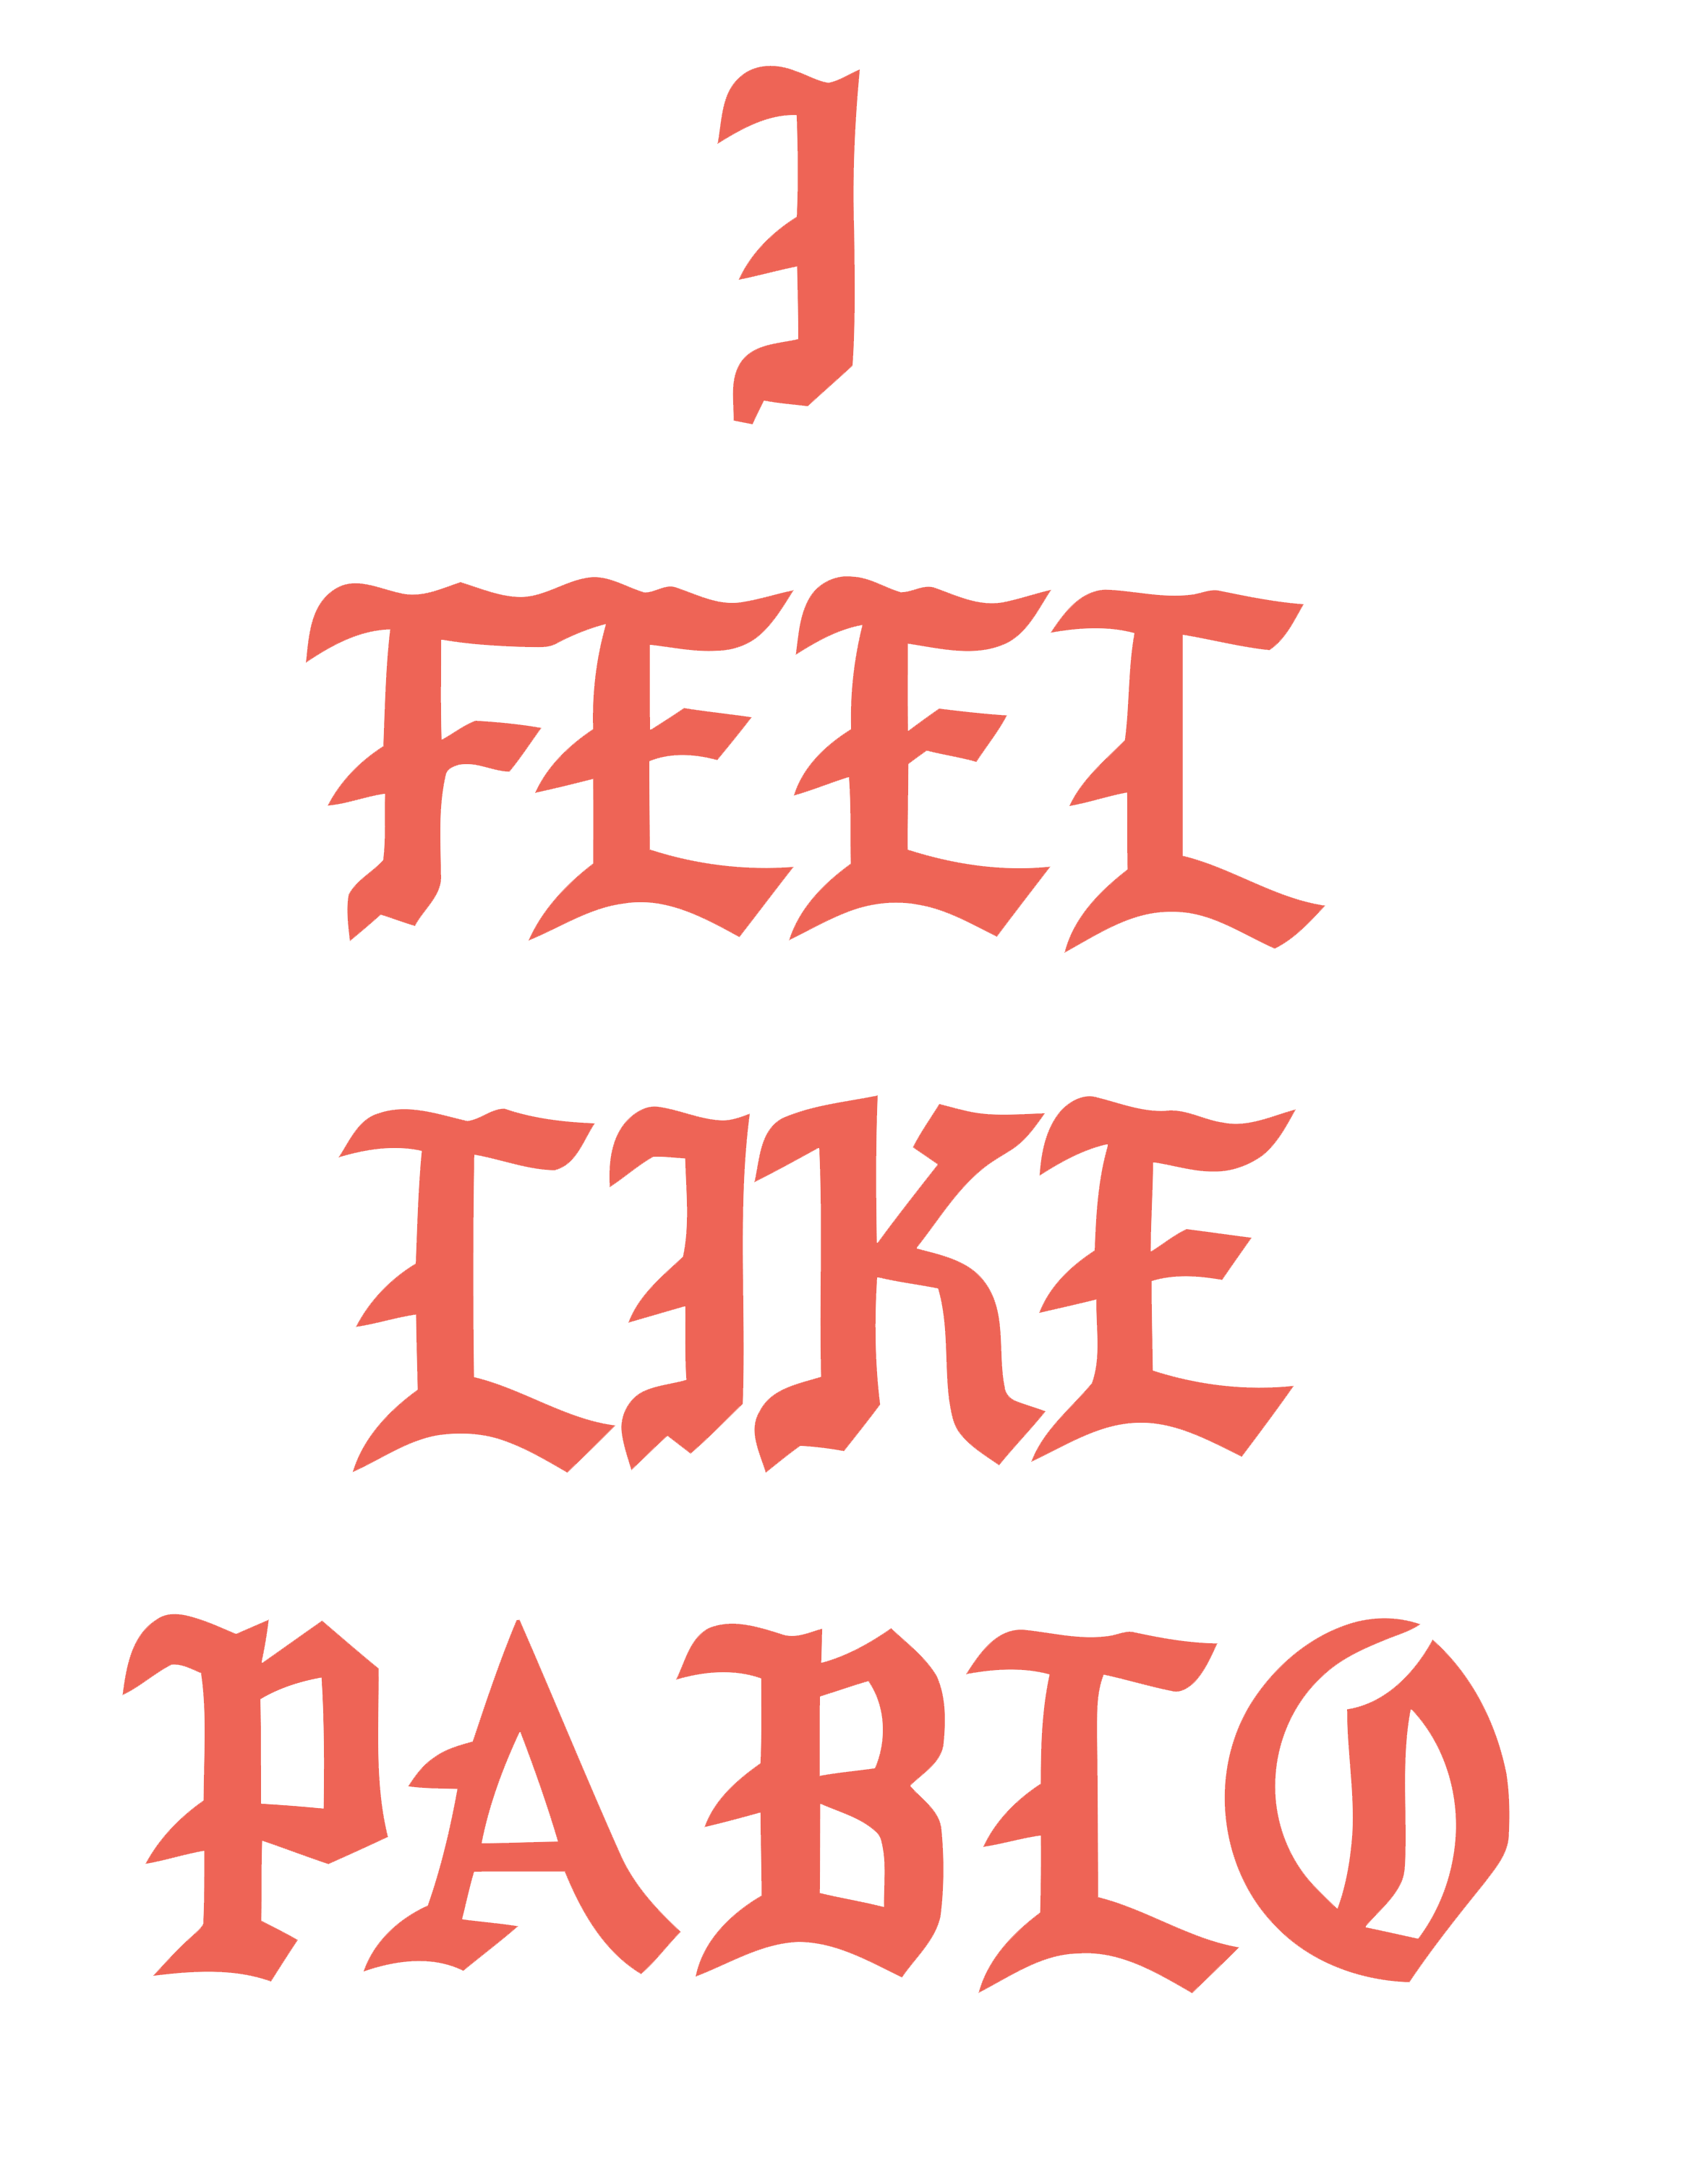 Kanye west logo png. Tattoo welcome to reddit